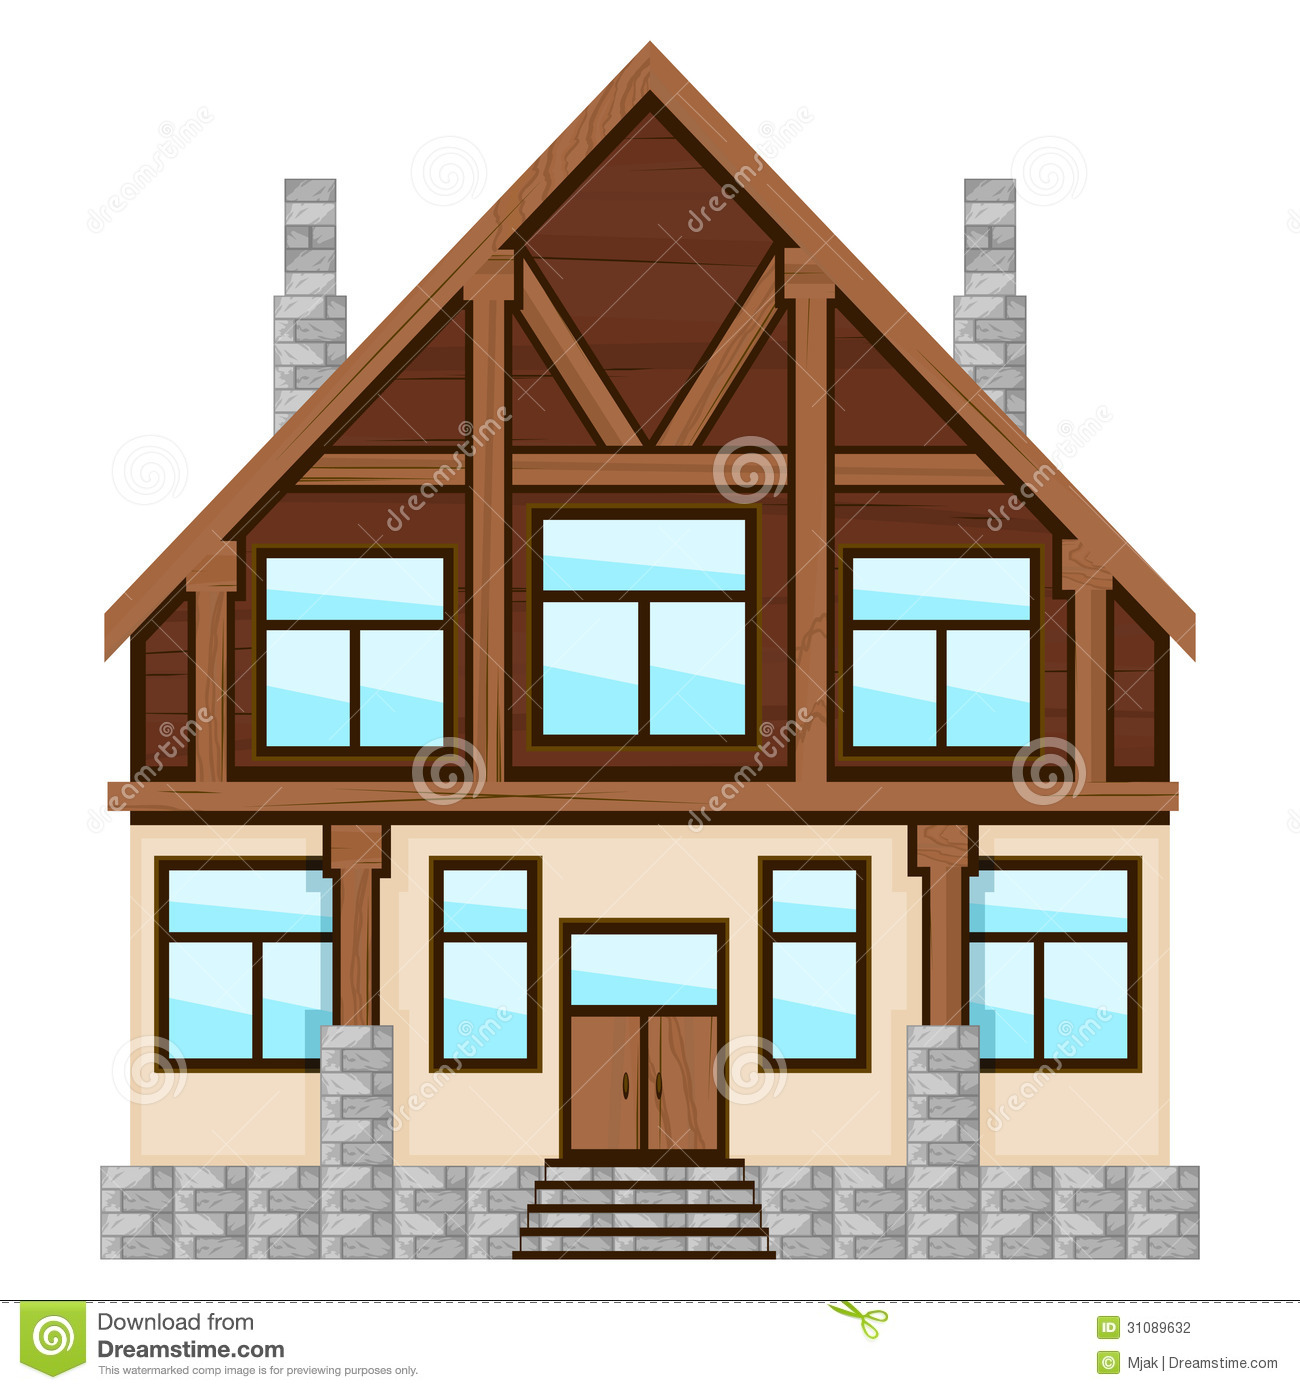 Big detailed icon of country house over white.